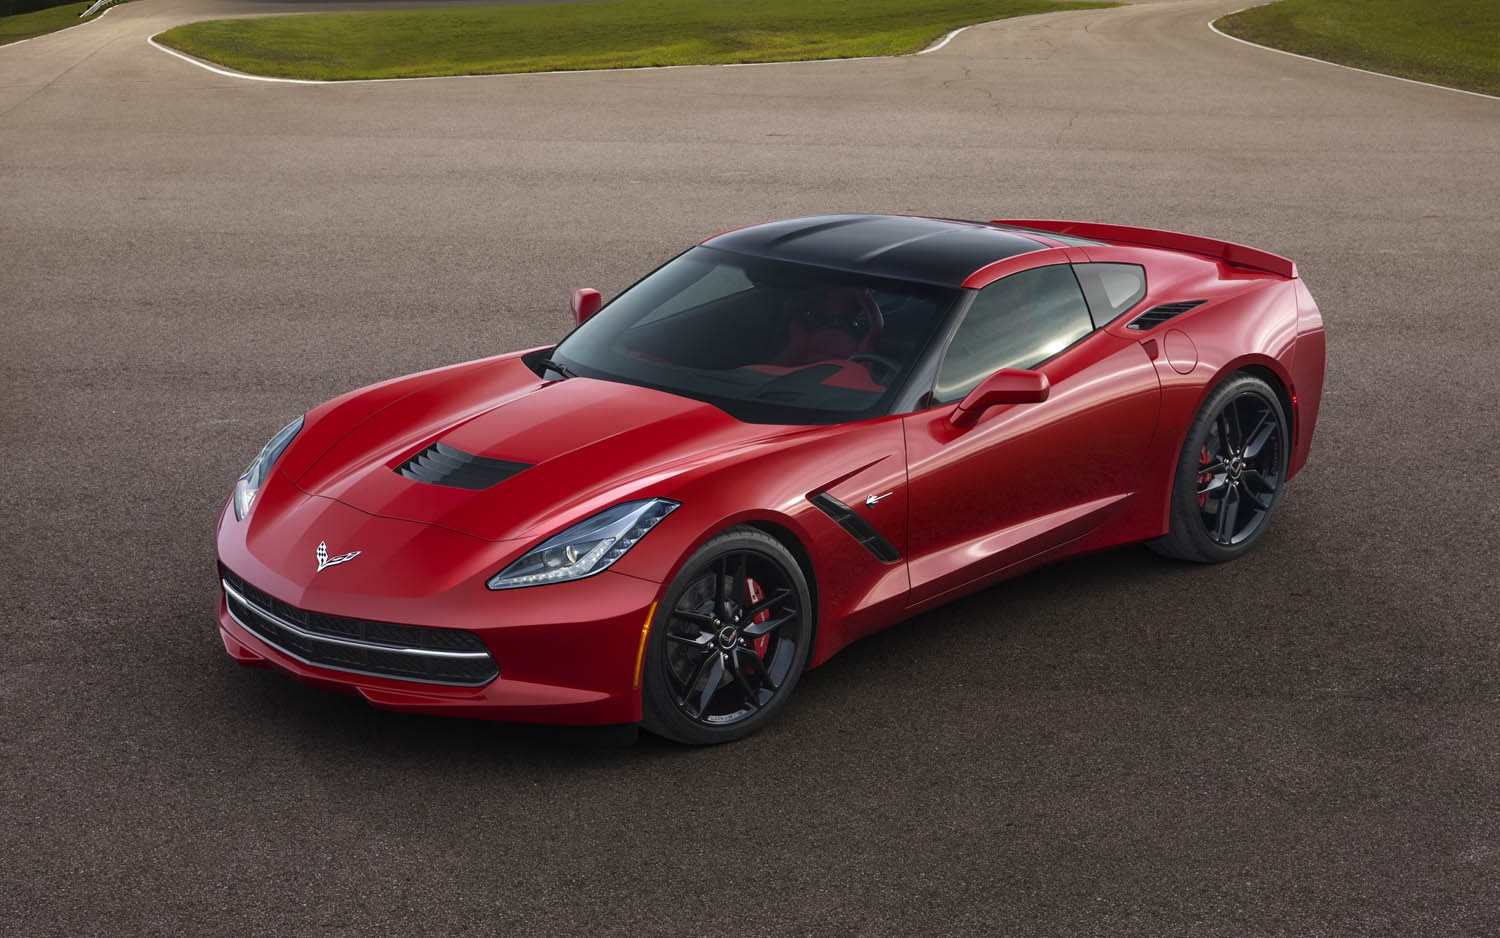 chevrolet corvette stingray z06 car wallpaper hd prices features wallpapers. Black Bedroom Furniture Sets. Home Design Ideas